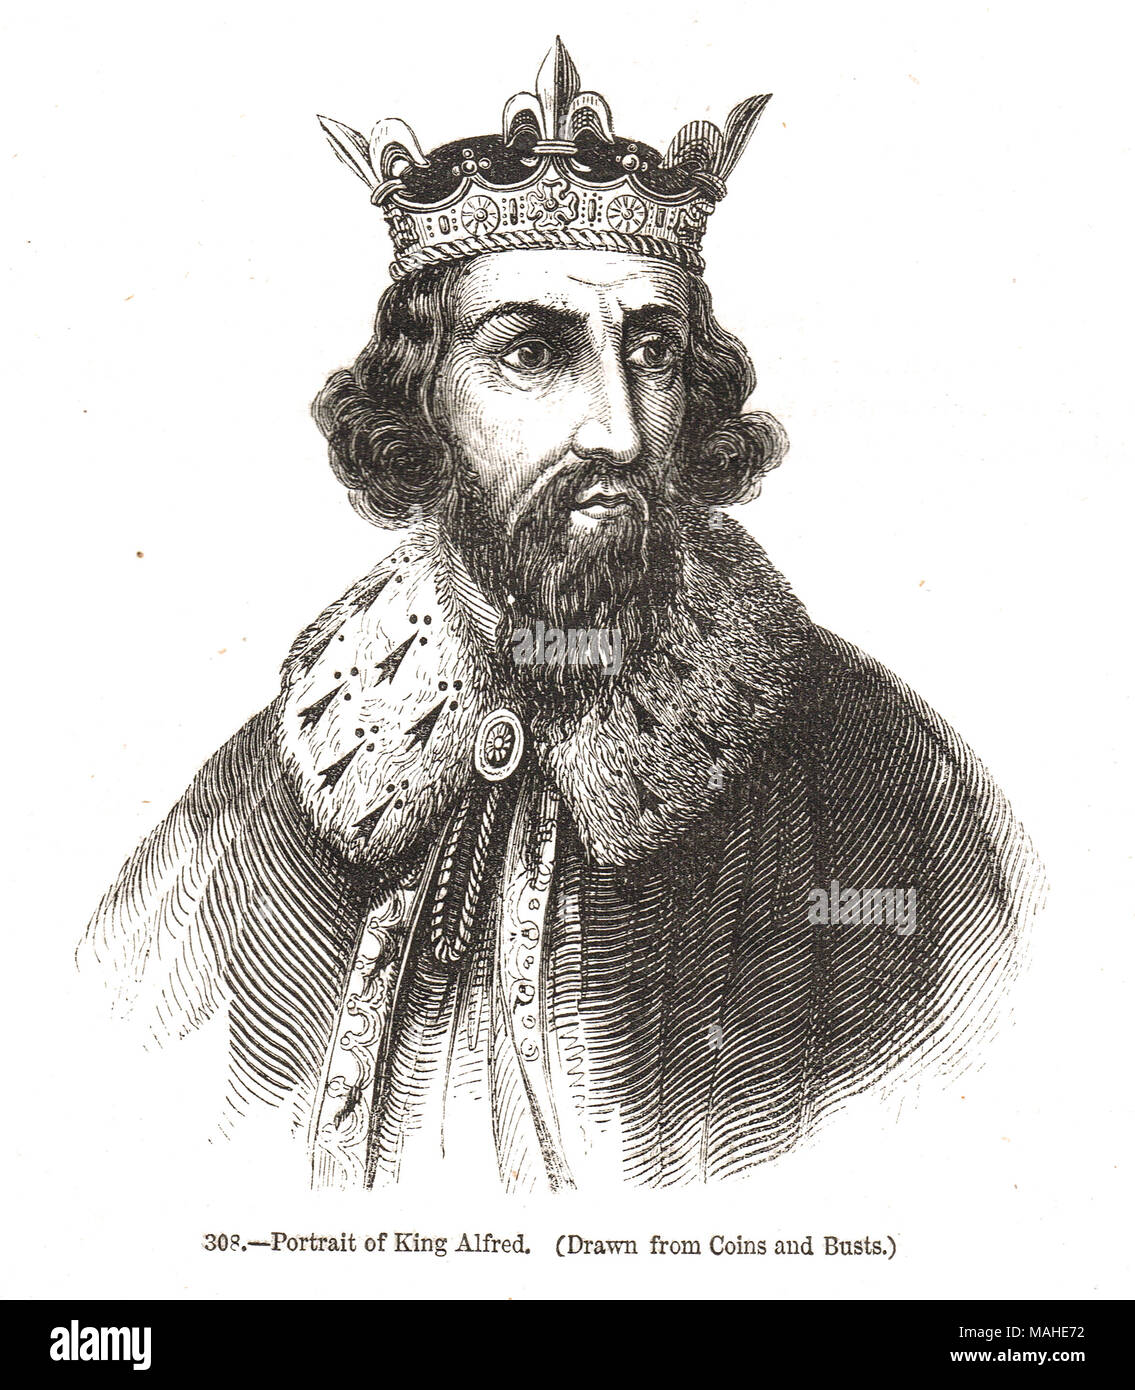 King Alfred The Great 9th Century King Of Wesstock